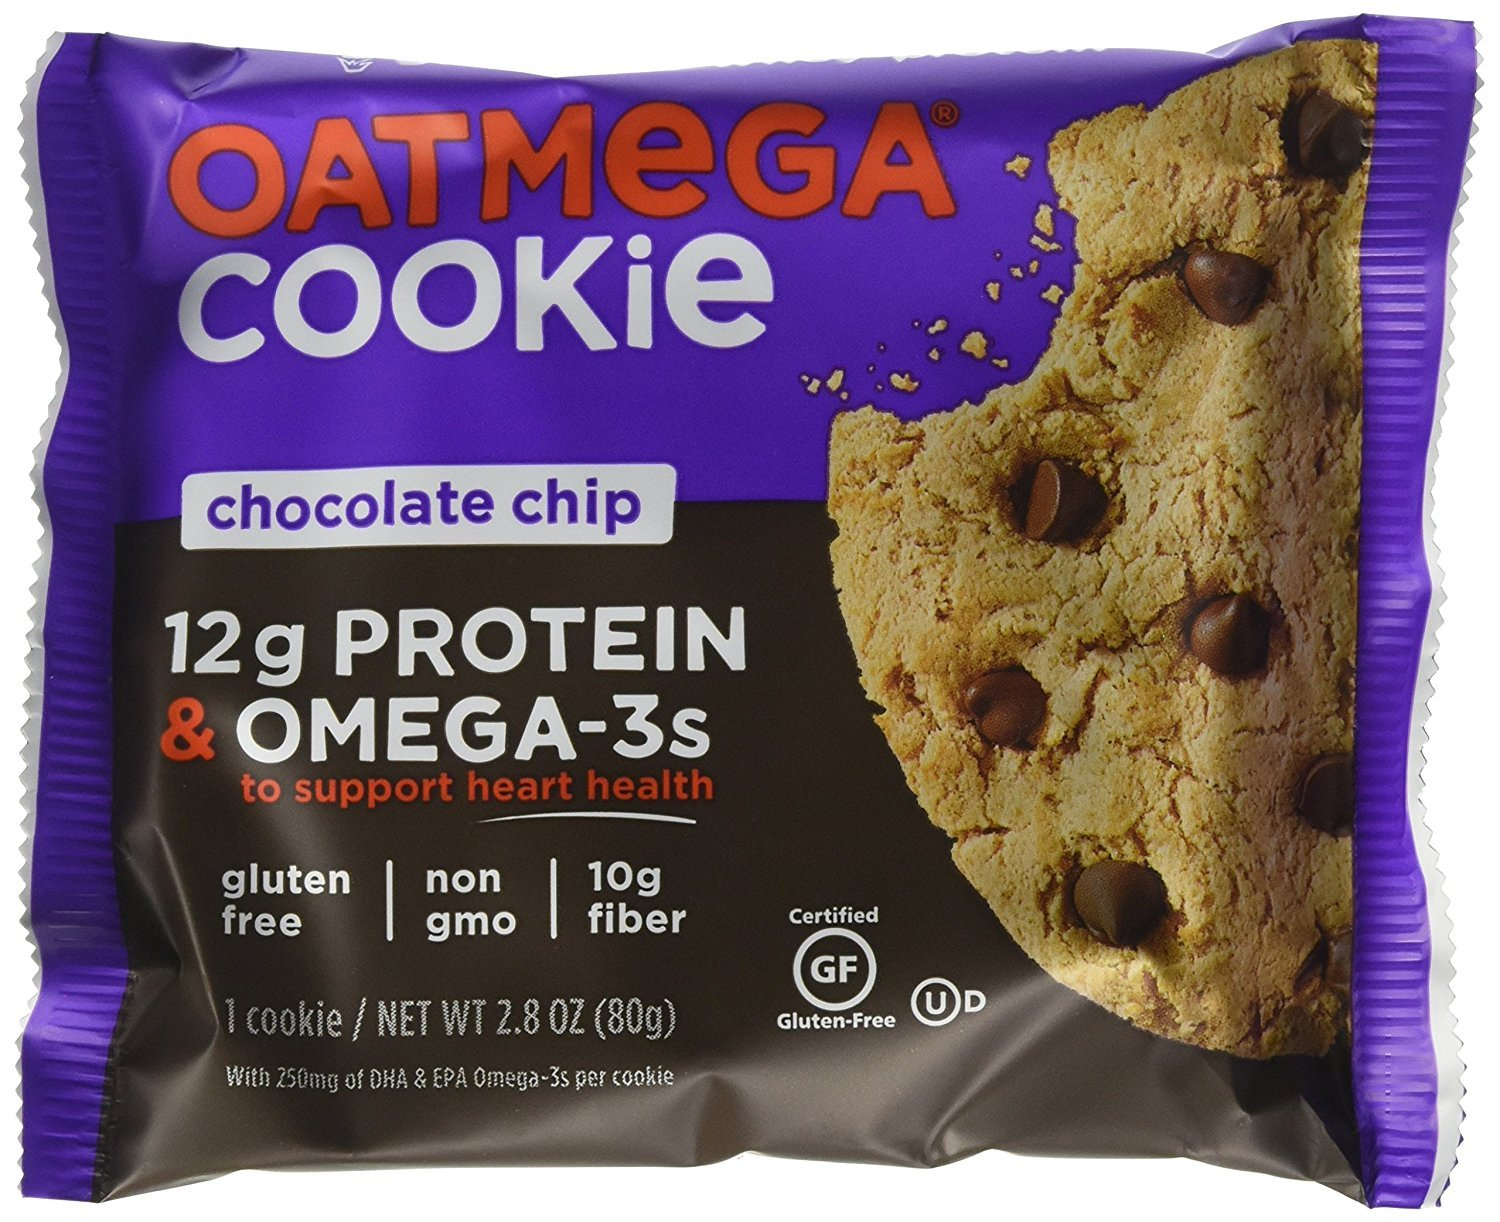 Oatmega Protein Cookie, Chocolate Chip, 2.8 Ounce, 12 Count